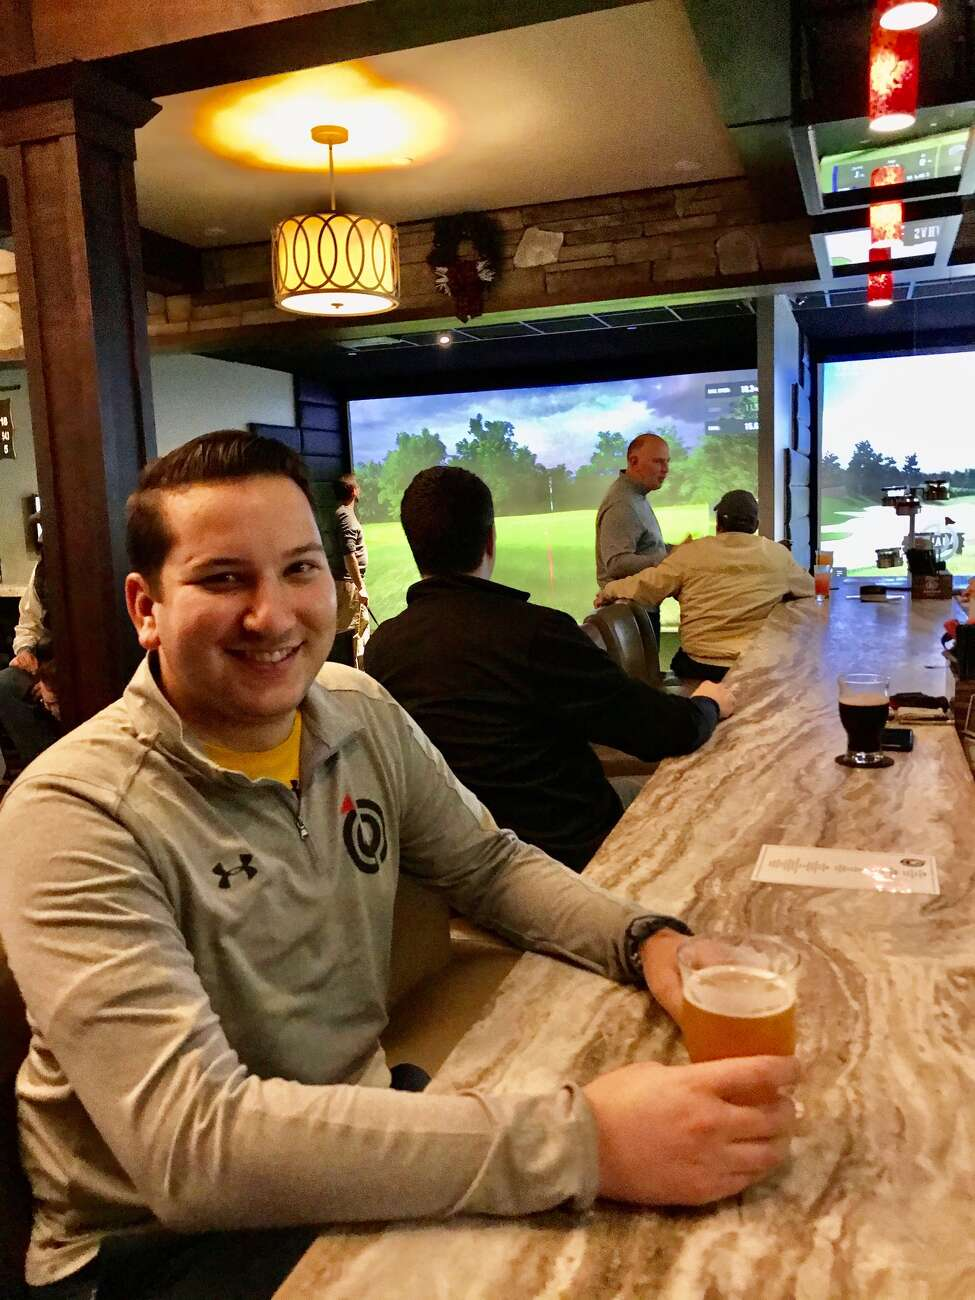 Chris Levy is golf-obsessed and plays at The Bunker four times a week when Albany Country Club is closed for the winter.